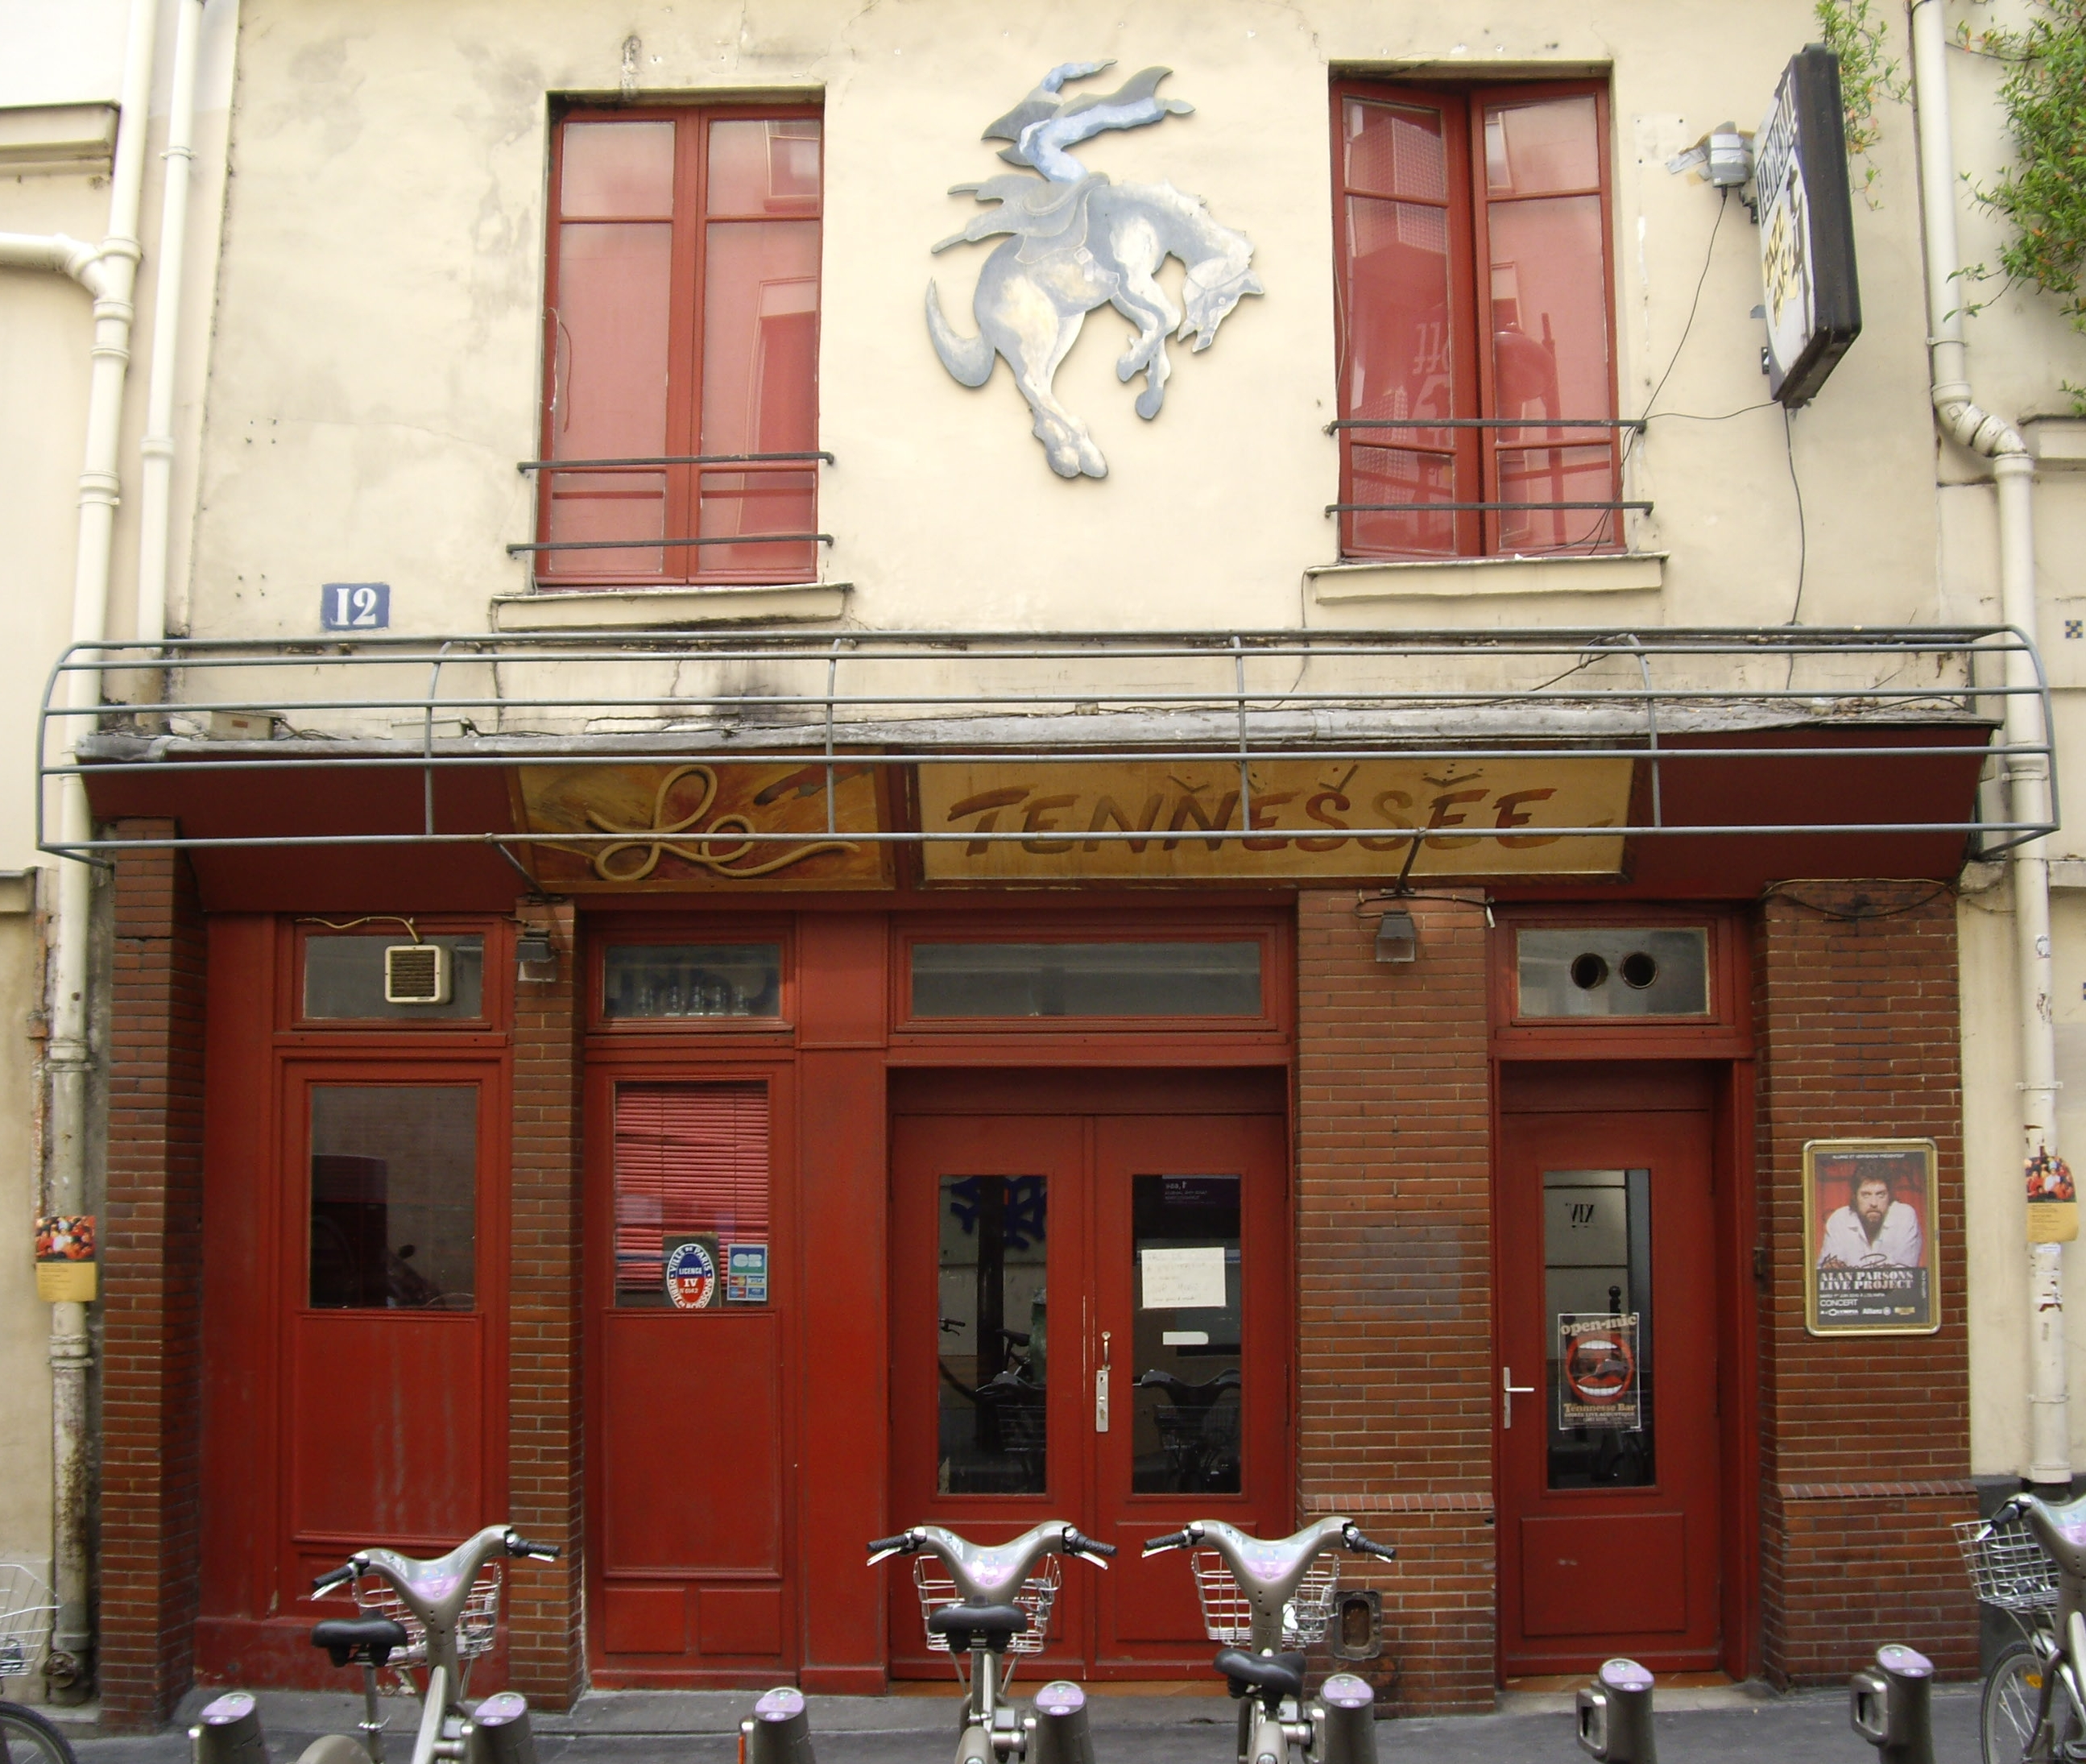 File:Le Tennessee, Rue André-Mazet, Paris 6.jpg - Wikimedia Commons